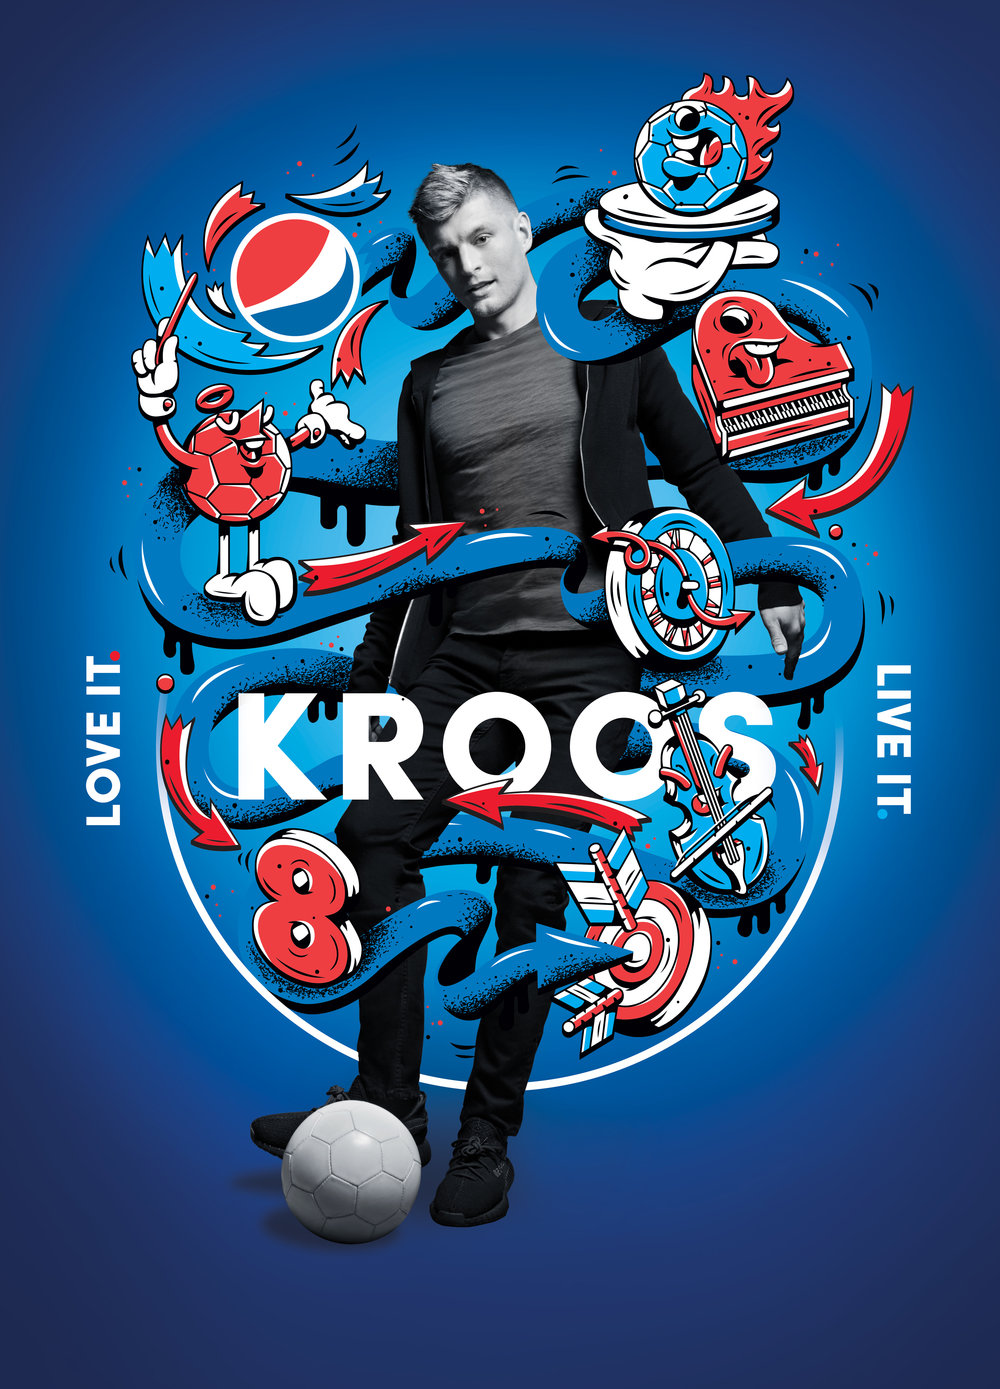 Pepsi Football 2018_Key Visual_Kroos_Portrait_No Branding.jpg